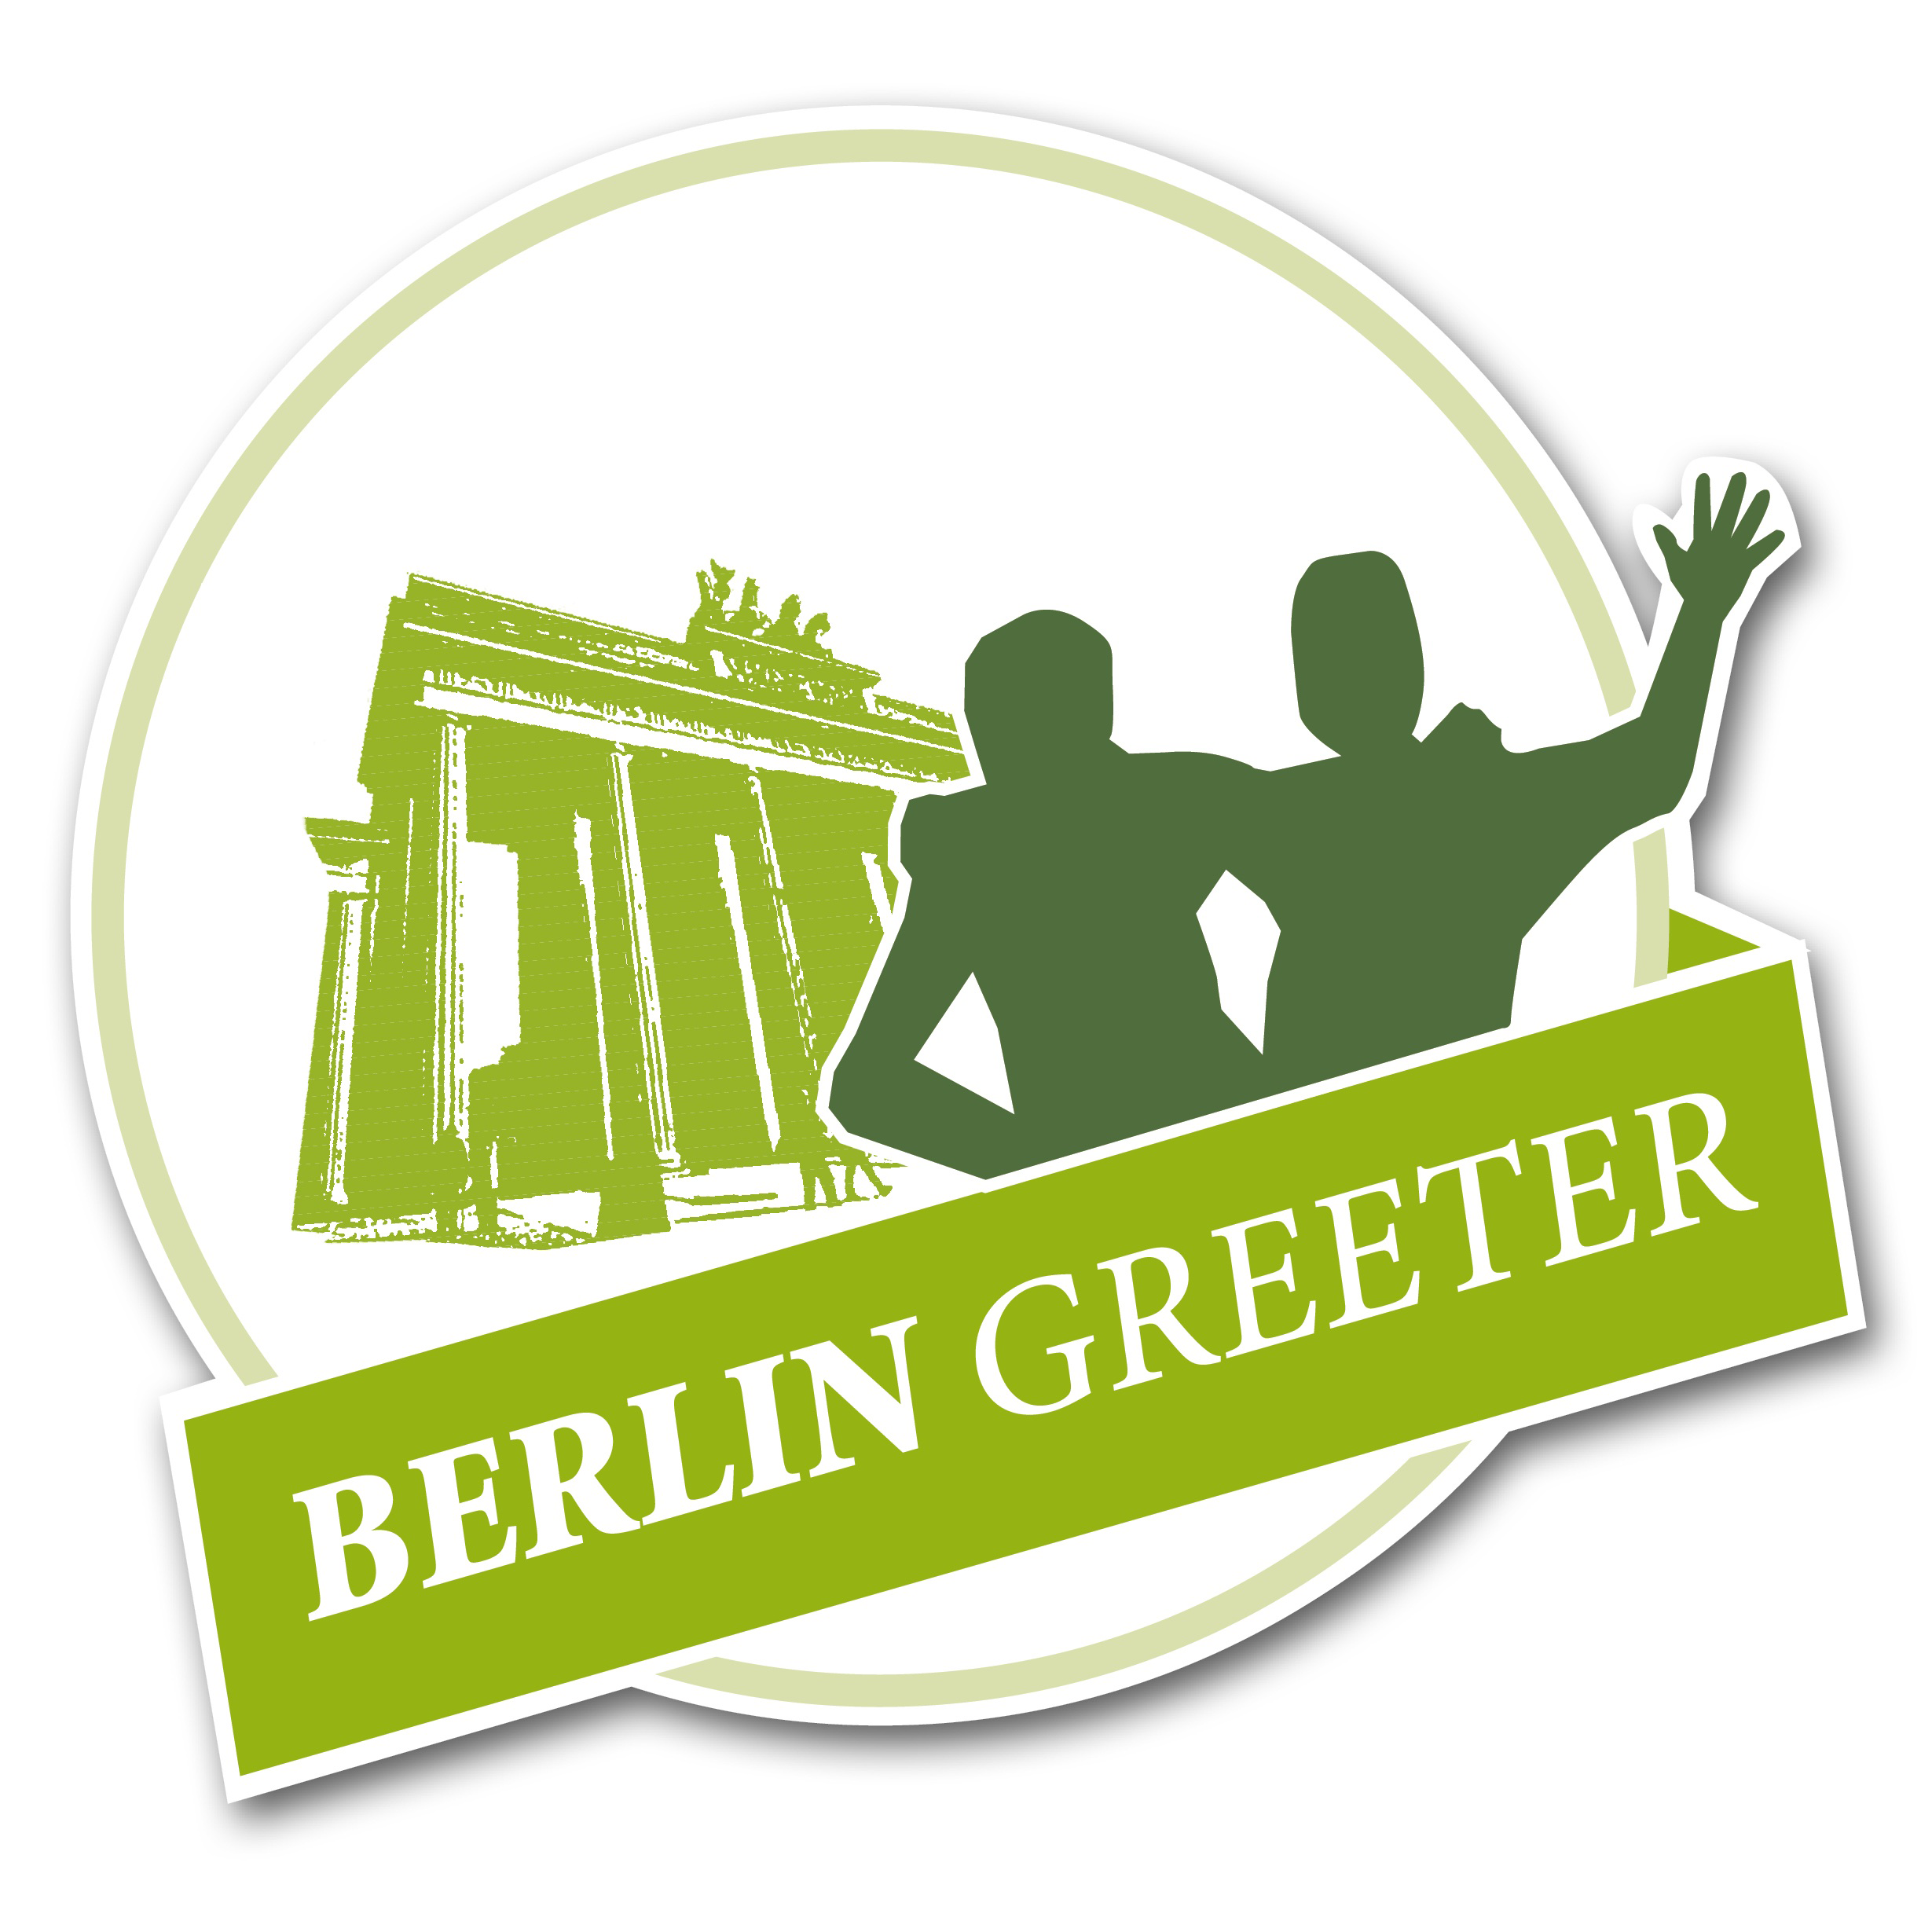 Berlin Greeter